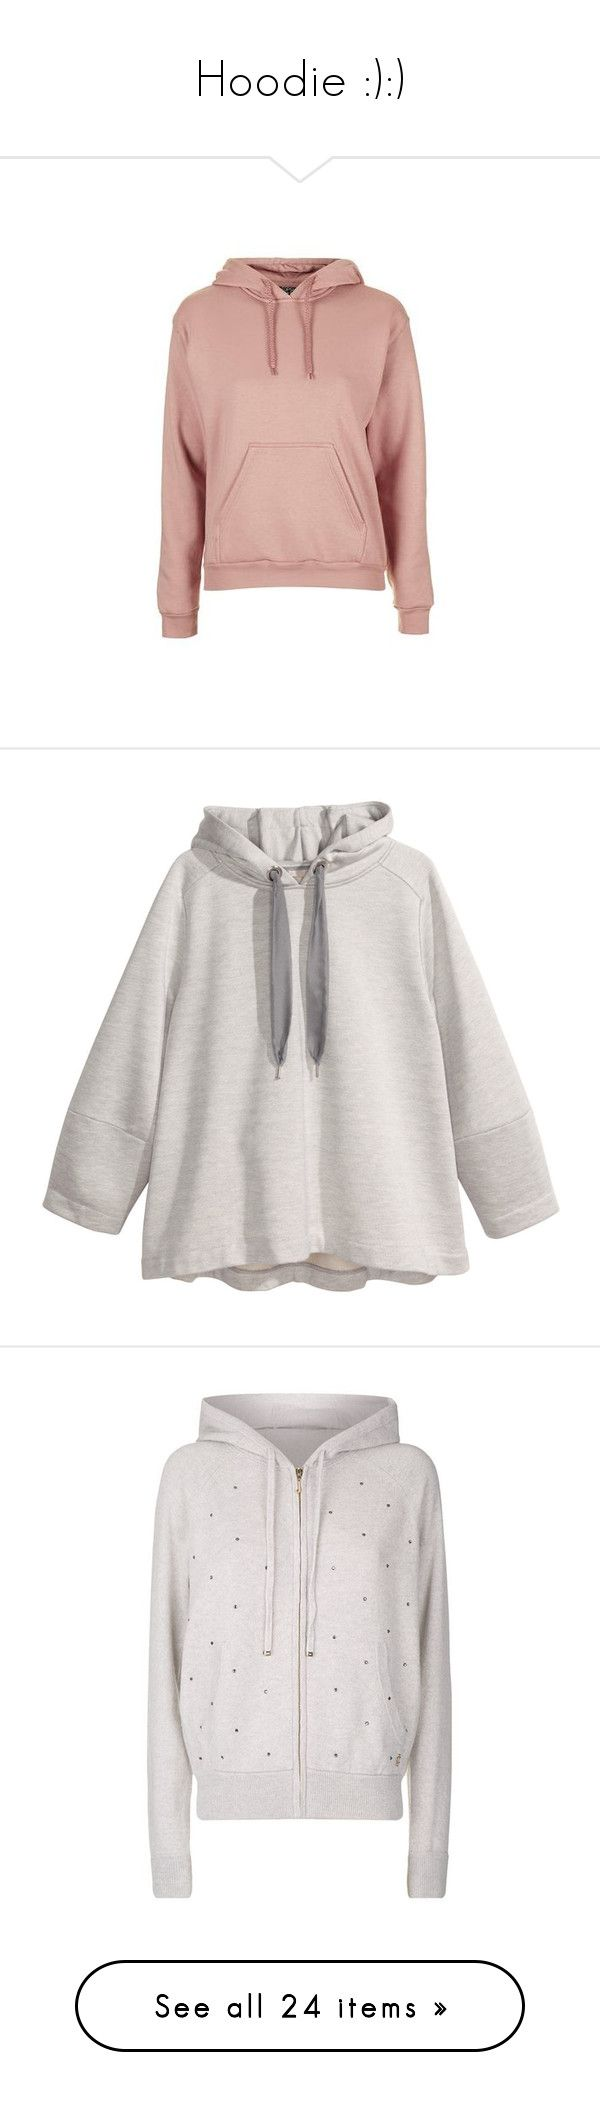 """Hoodie :):)"" by somethinglikelove ❤ liked on Polyvore featuring tops, hoodies, jumpers, outerwear, jackets, nude, sweatshirt hoodies, double layer top, petite hoodies and petite hoodie"